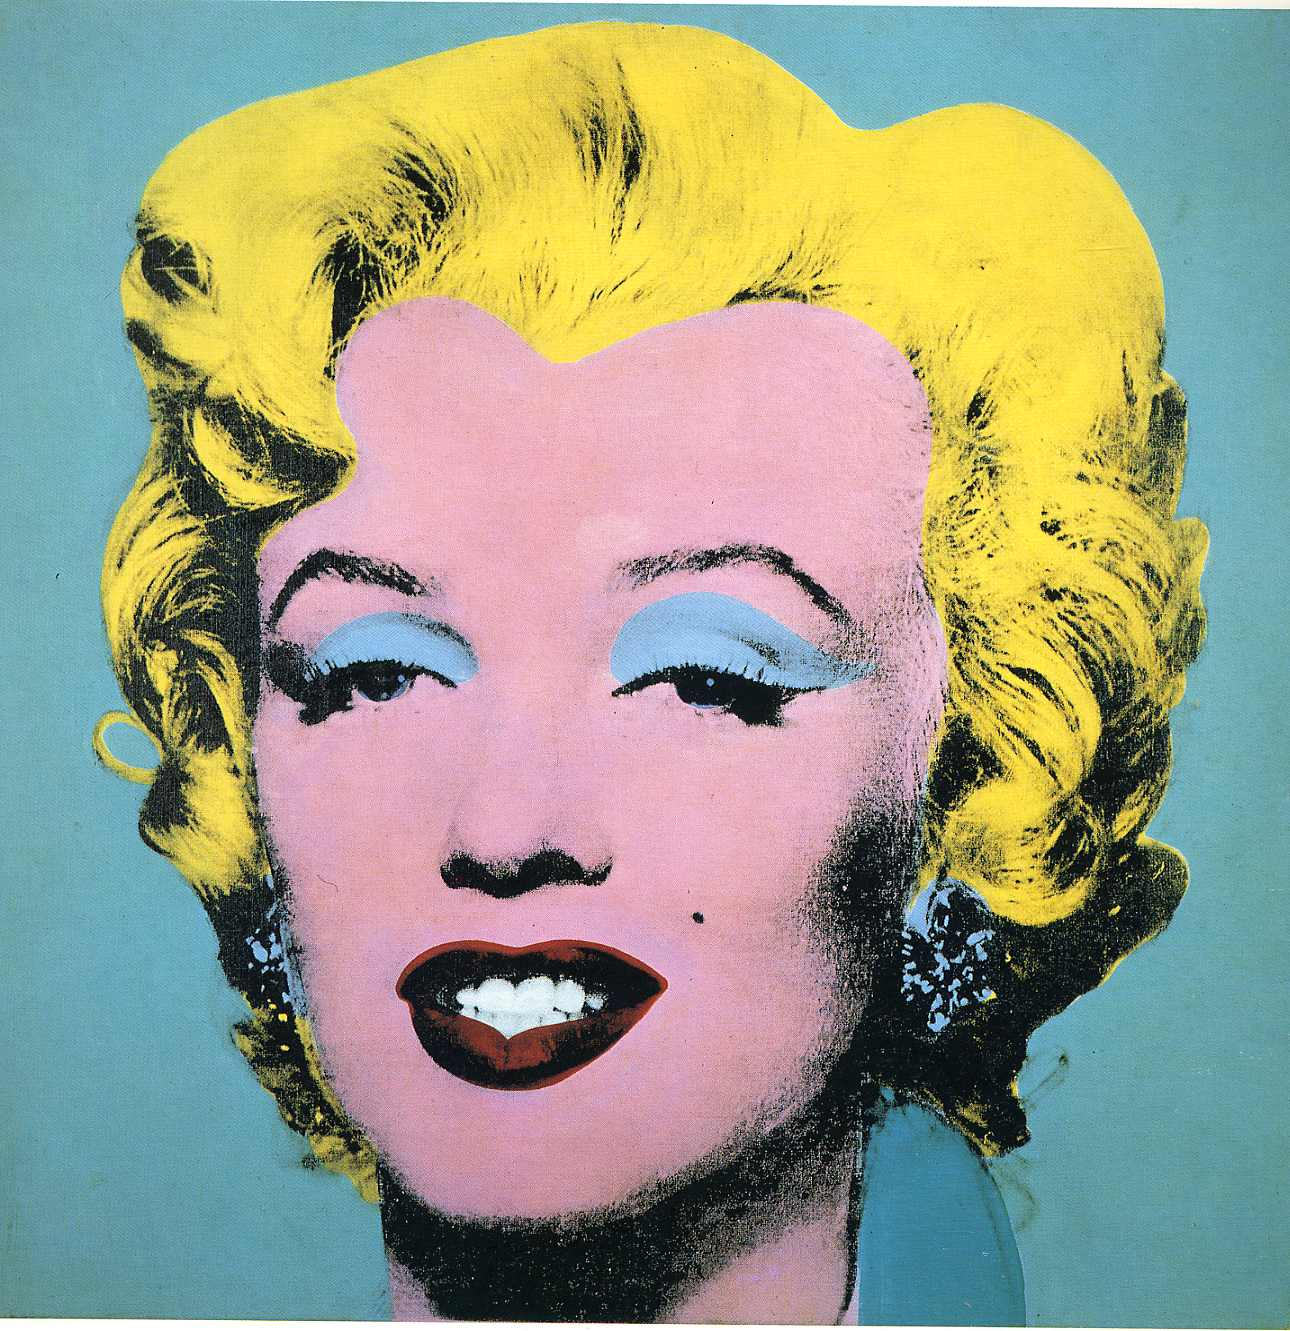 Préférence Marilyn, 1964 - Andy Warhol - WikiArt.org ZK74